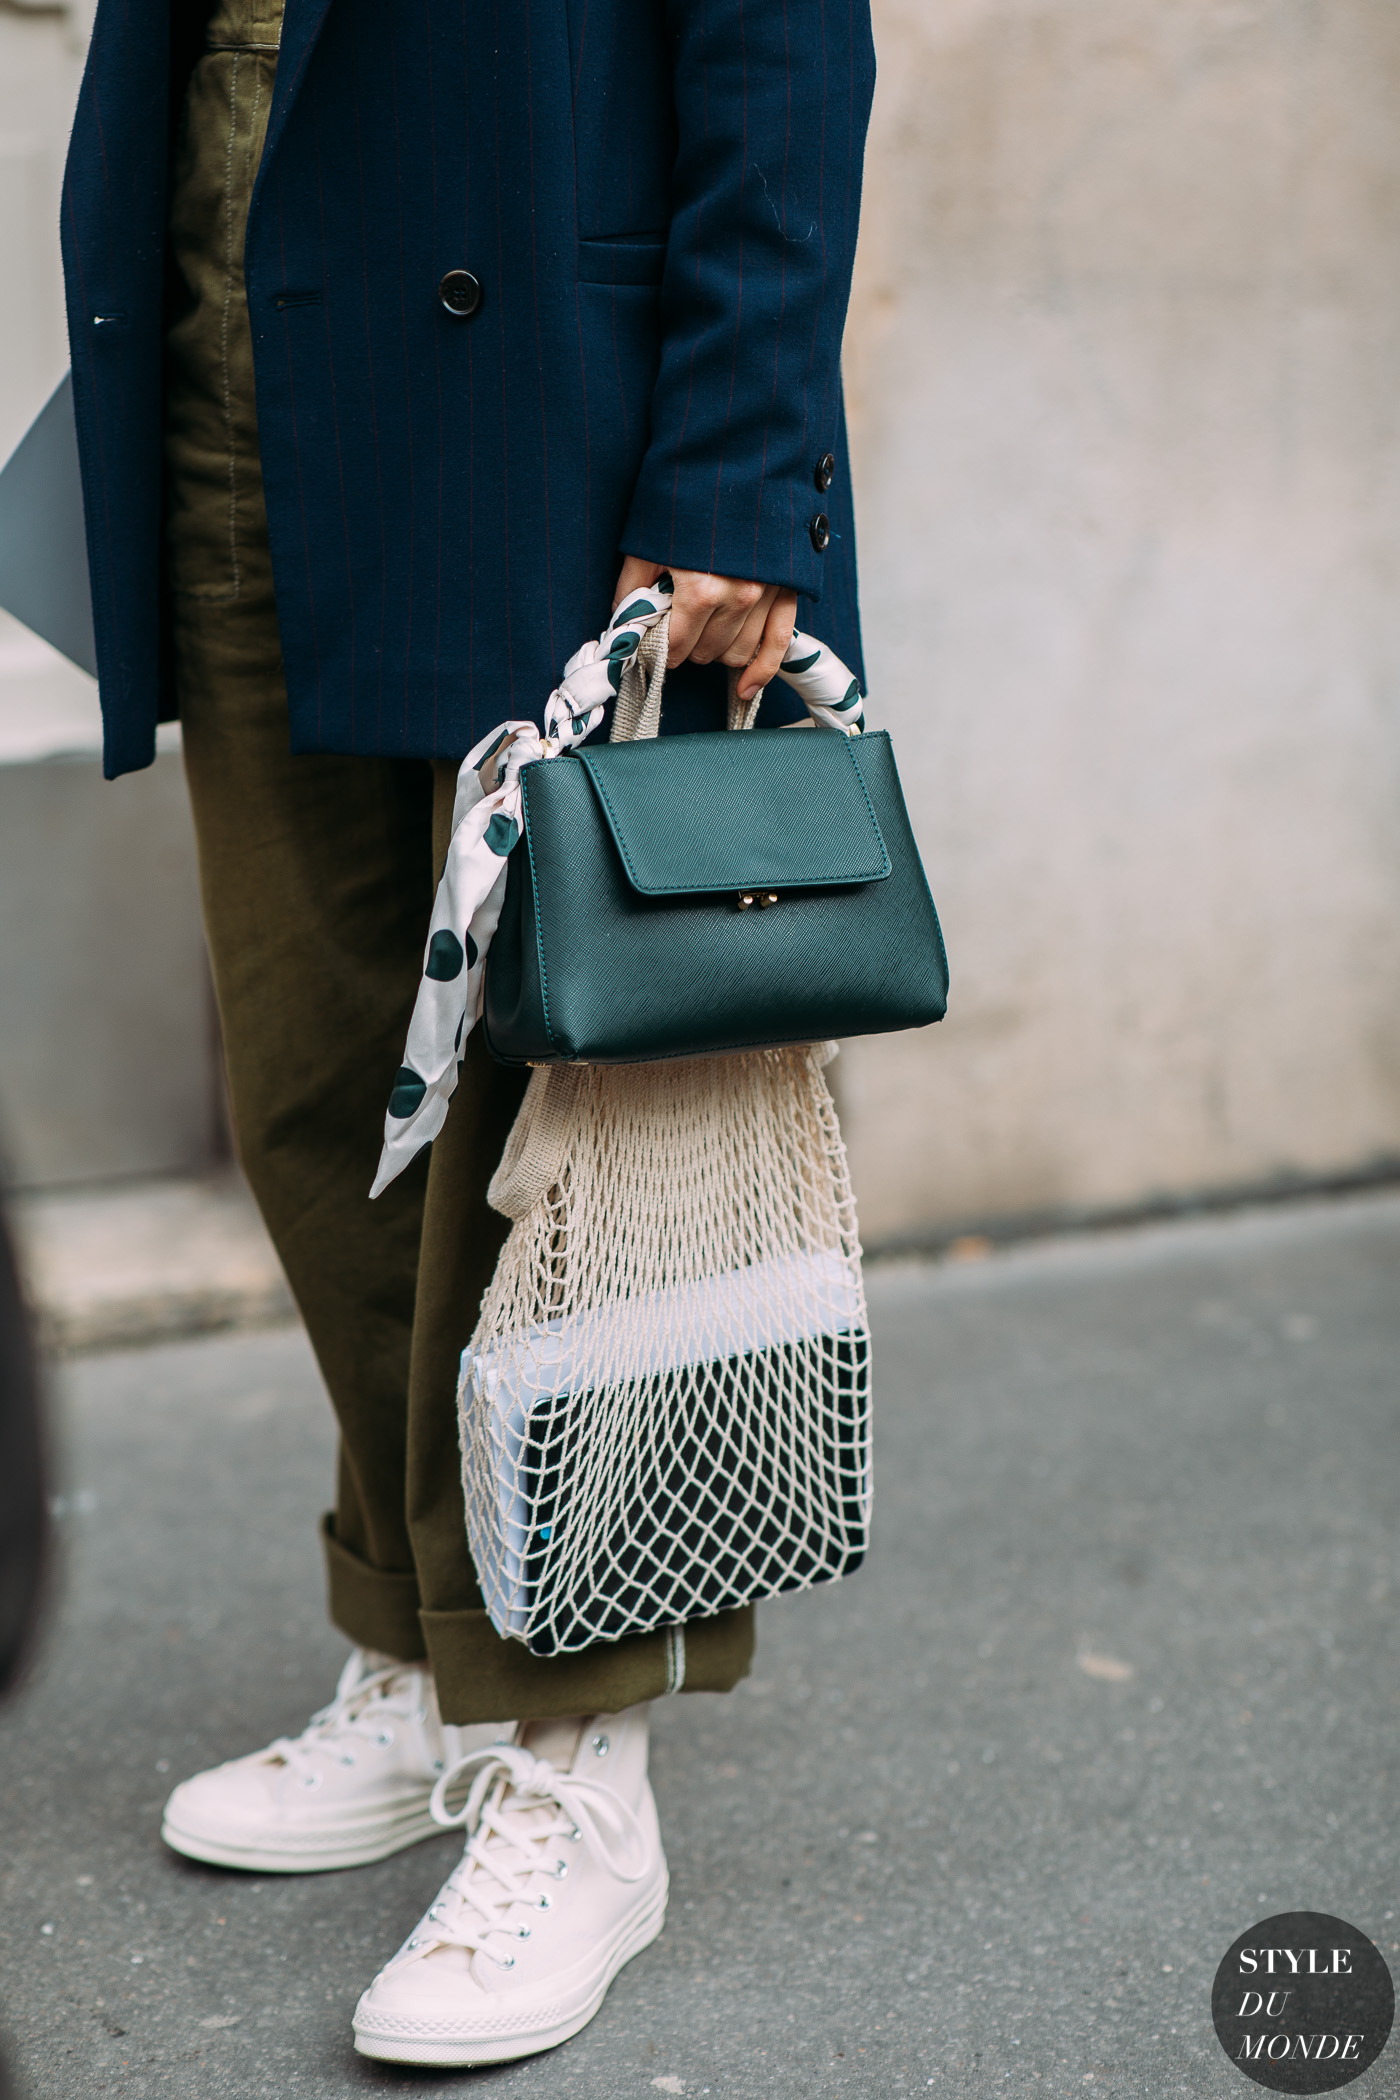 Details by STYLEDUMONDE Street Style Fashion Photography FW18 20180305_48A8091